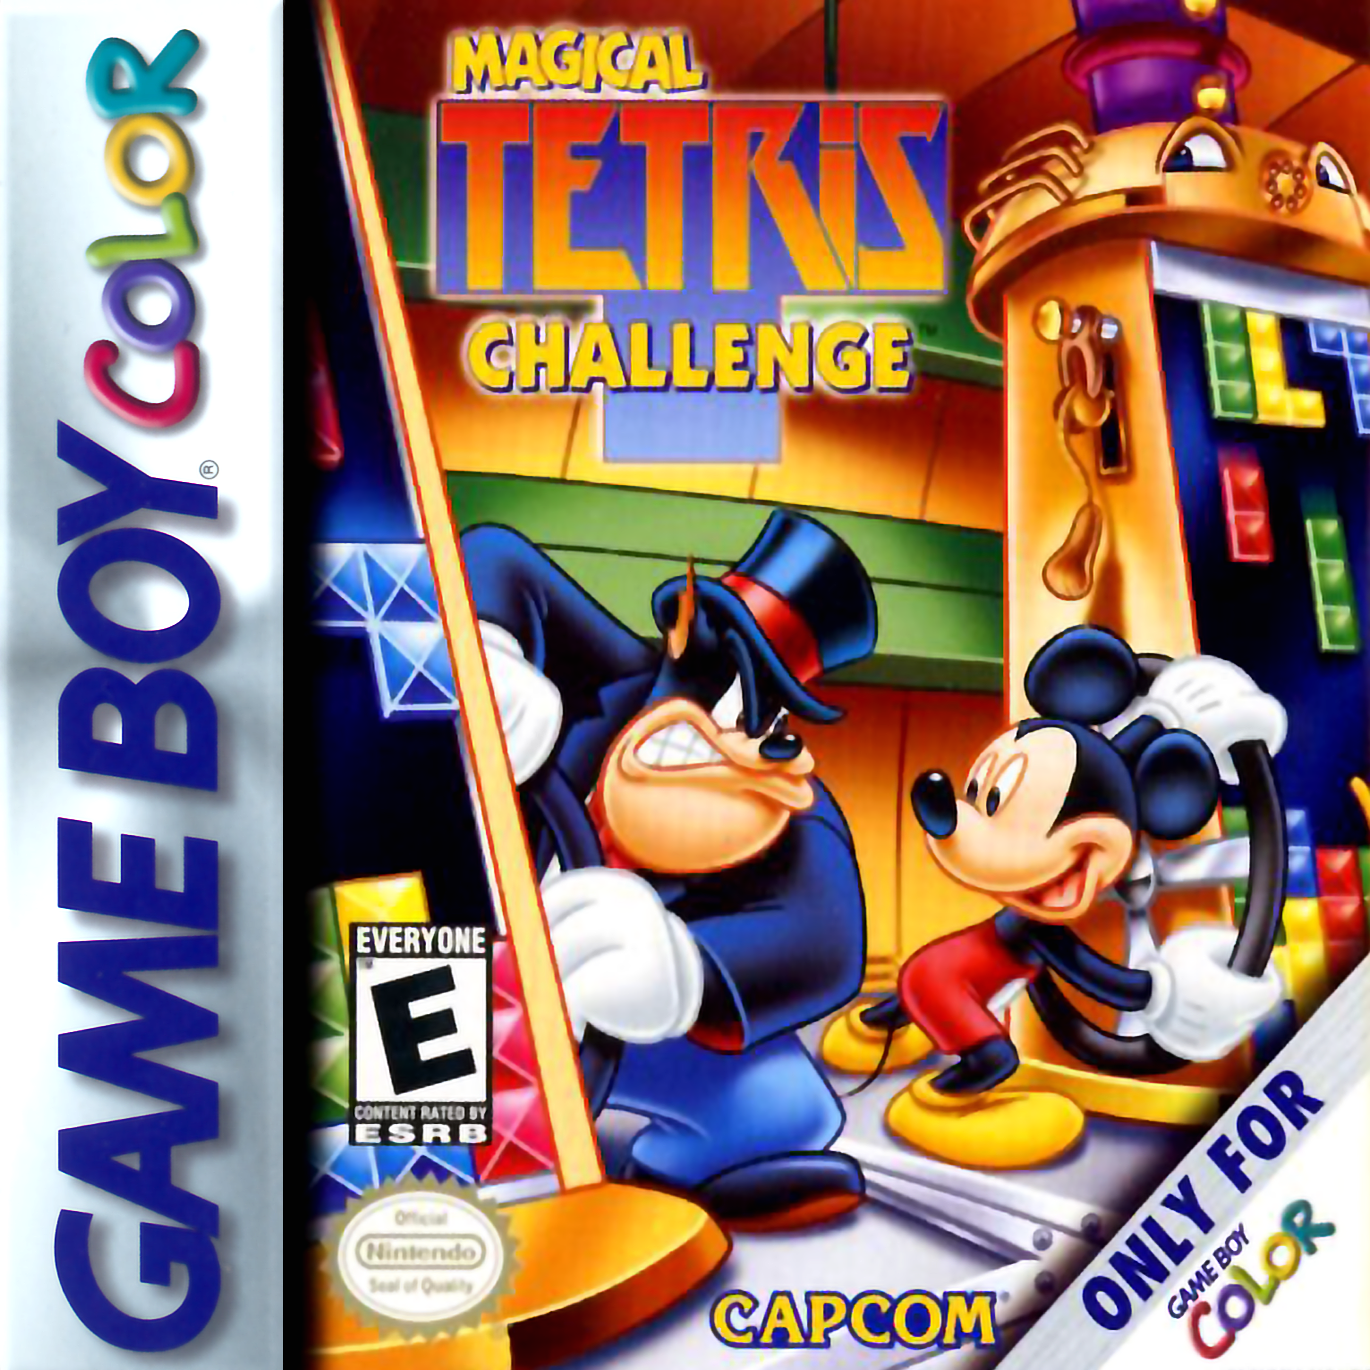 Game boy color online games - Magical Tetris Challenge Nintendo Game Boy Color Cover Artwork